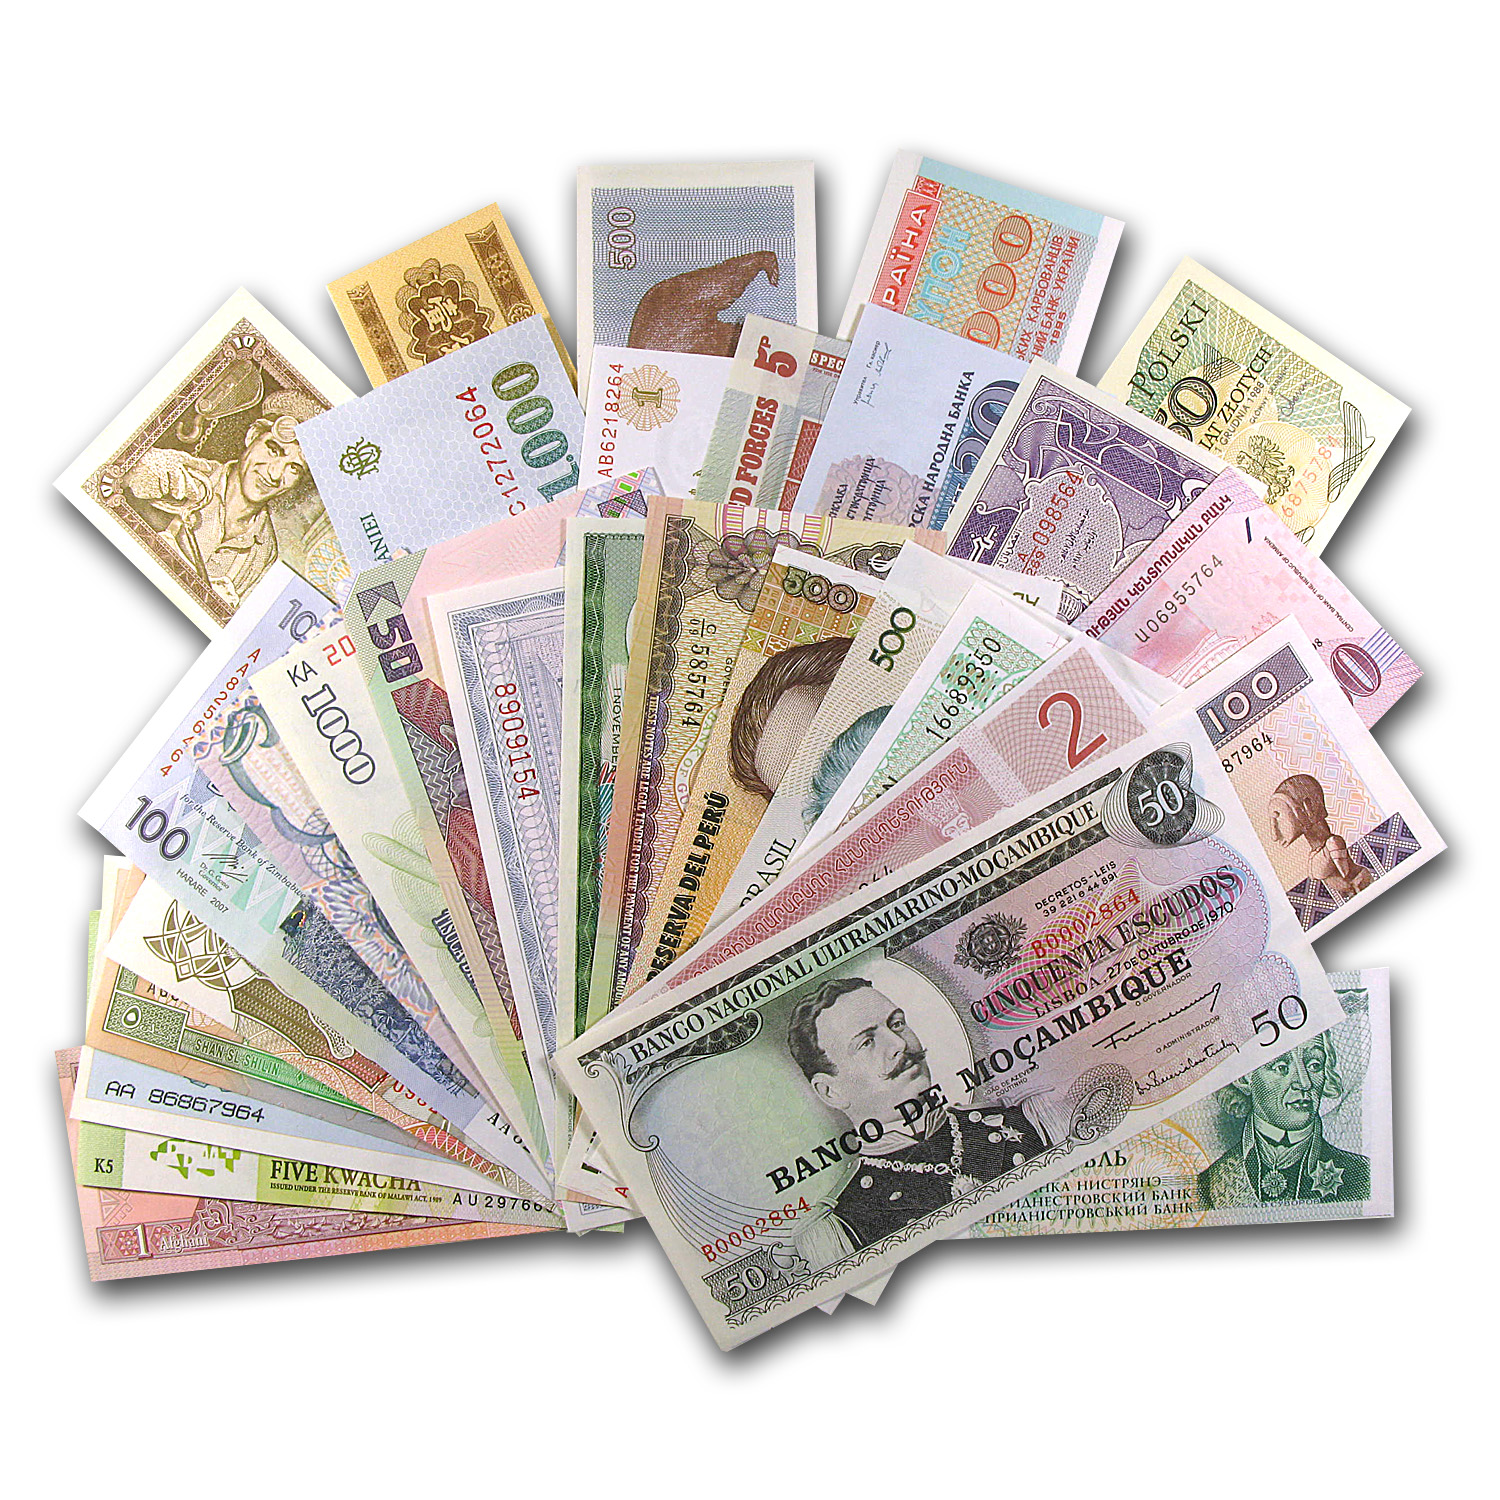 50 World Bank Notes - (From 50 Different Countries) Uncirculated